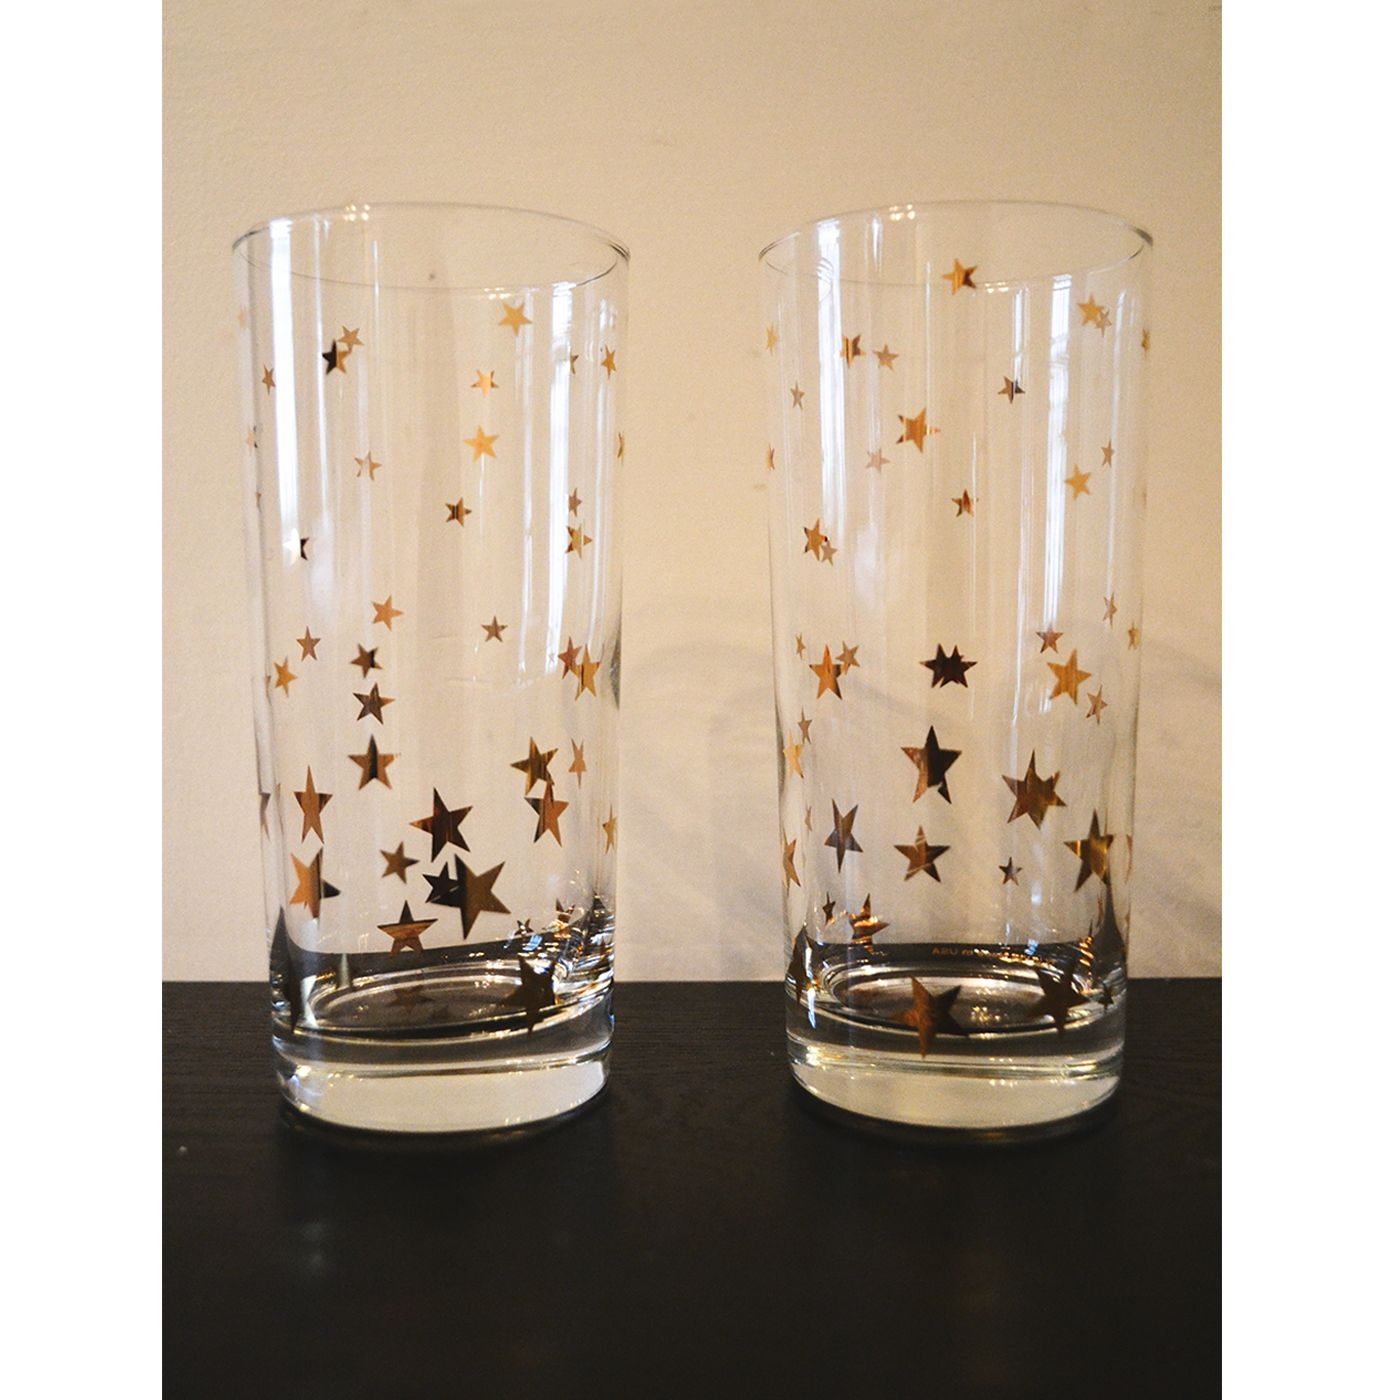 Gold star glasswarewe have similar ones items of interest